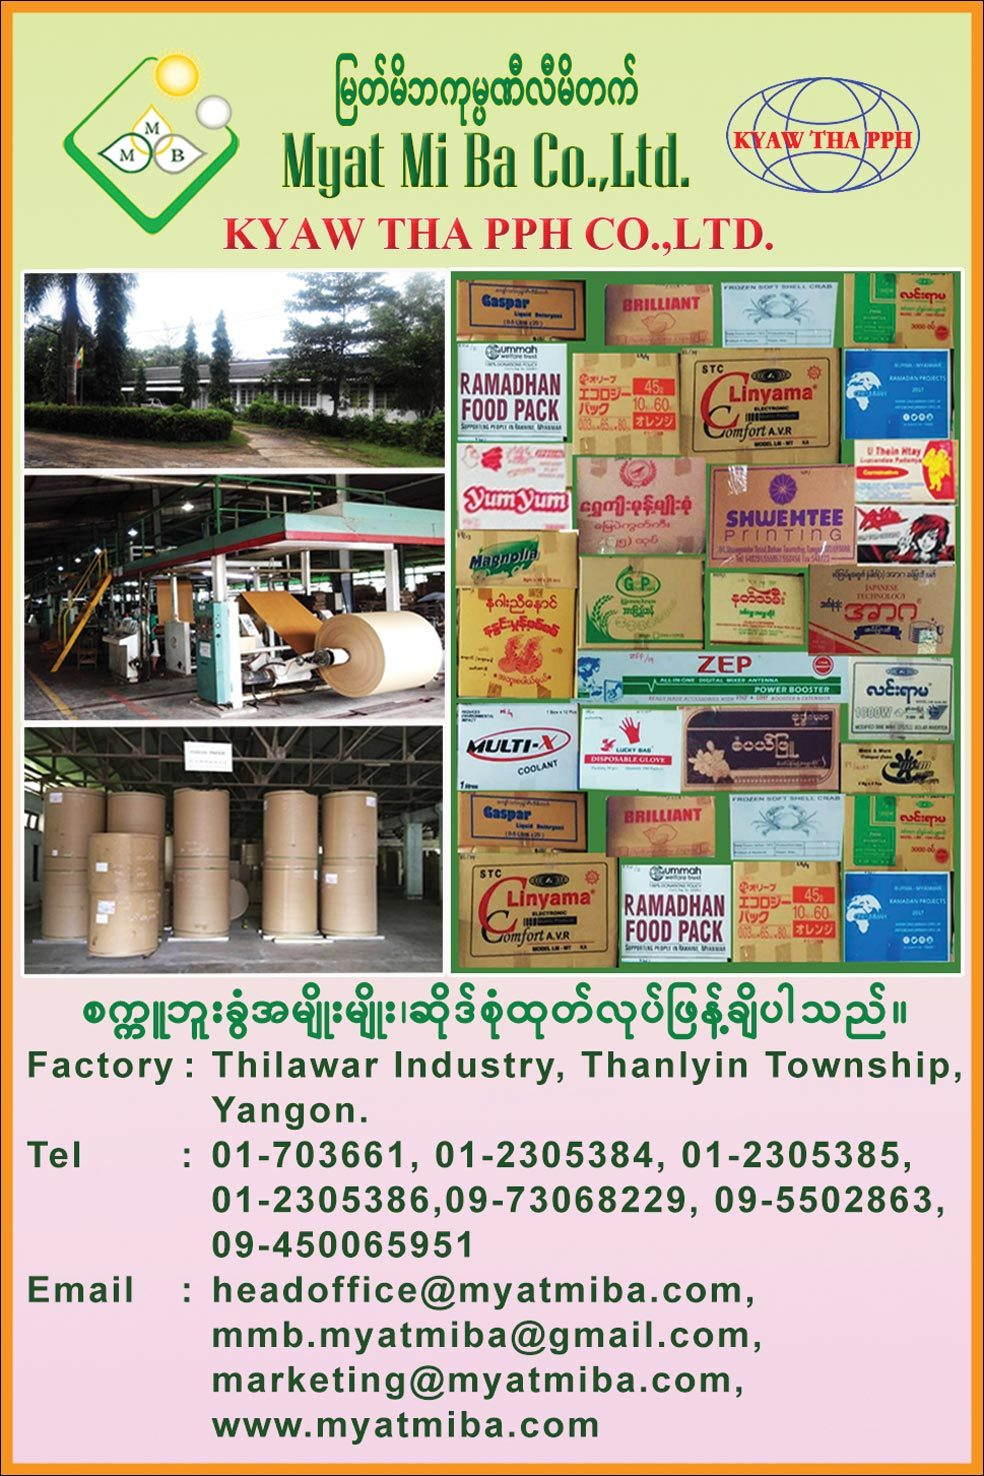 Myat-Miba_Packing-Filling-&-Wrapping-Materials-&-Equipments_(A)_2707.jpg